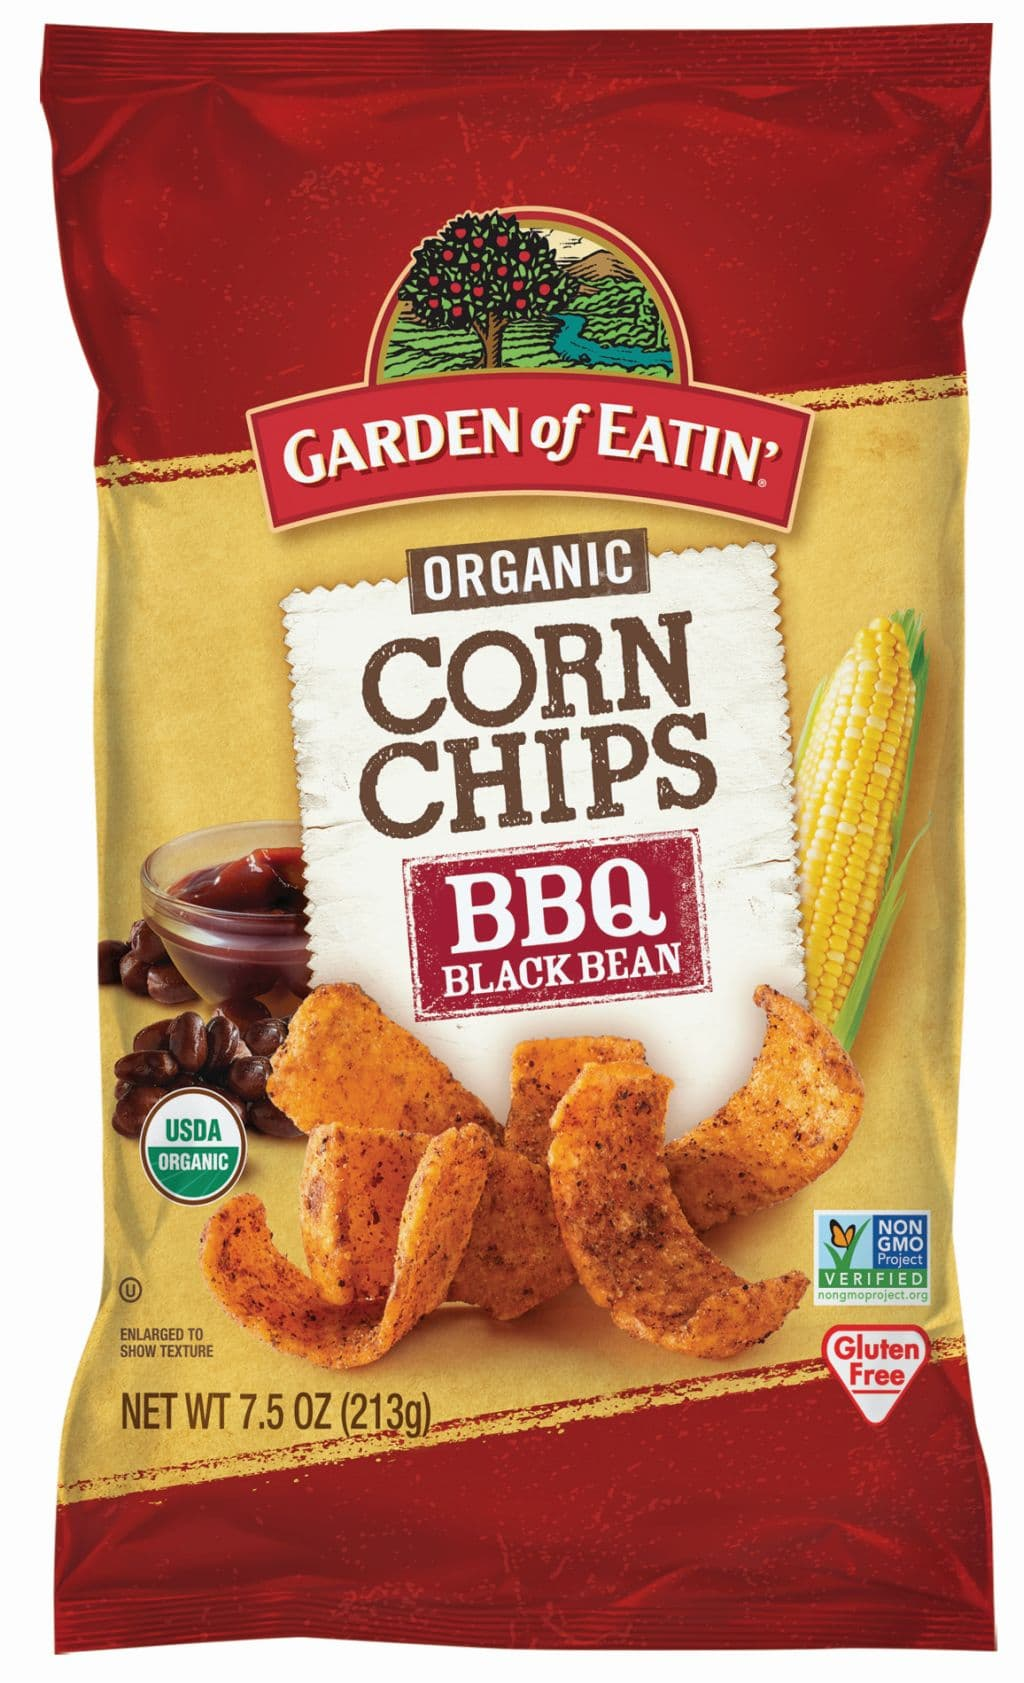 GOE BBQ Corn Chips 7p5oz 623x1024 - Natural Products Expo West 2018: Exhibitors to put on your visit list